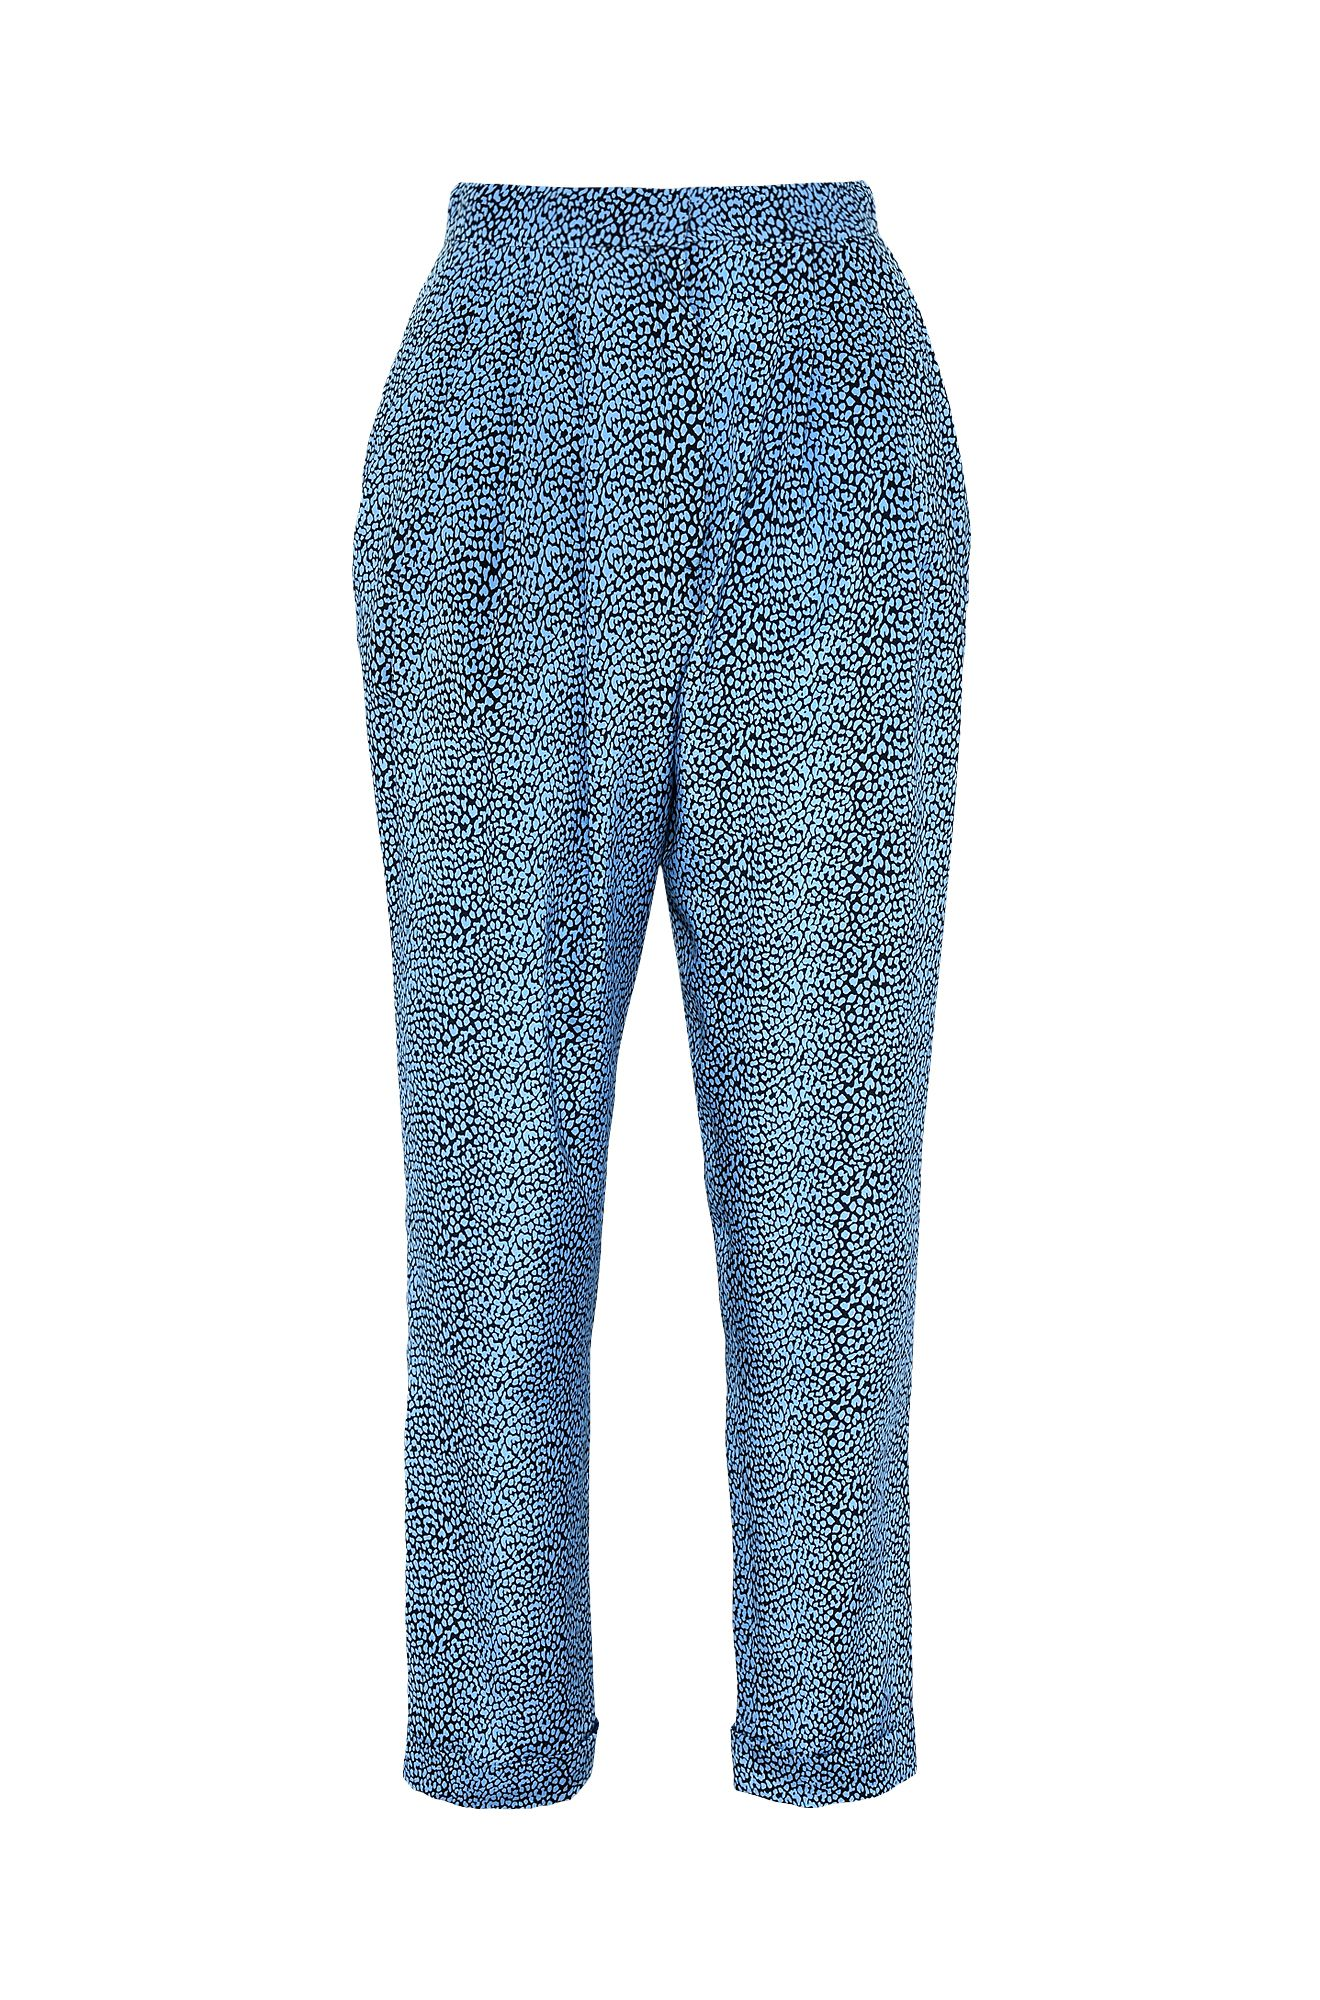 Trousers with micro animal print